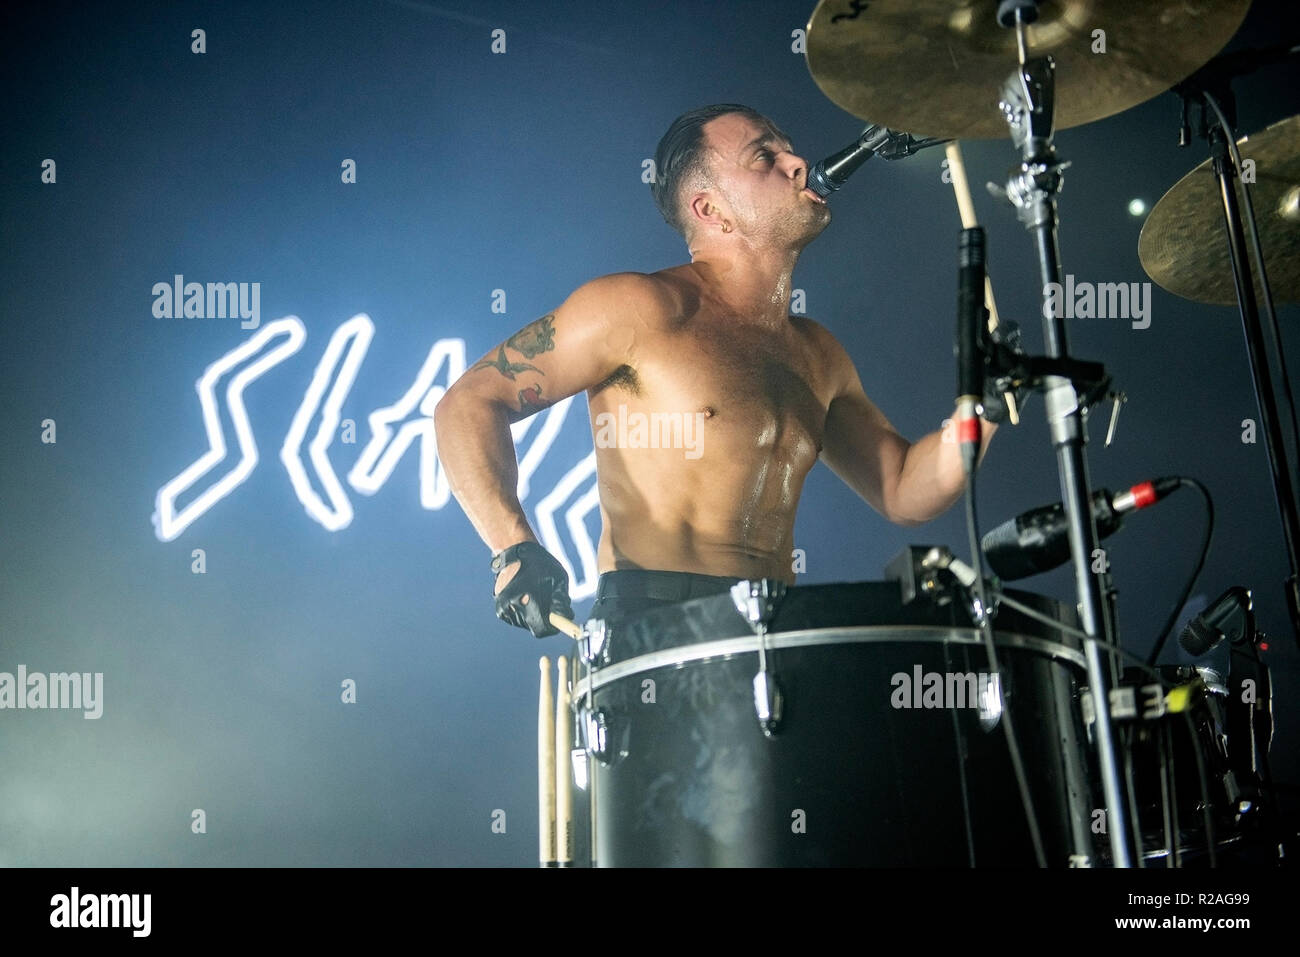 Manchester, UK. 17th November 2018. Isaac Hoffman and Laurie Vincent of Slaves perform at the Manchester Academy on their UK tour, Manchester 17/11/2018 Credit: Gary Mather/Alamy Live News - Stock Image